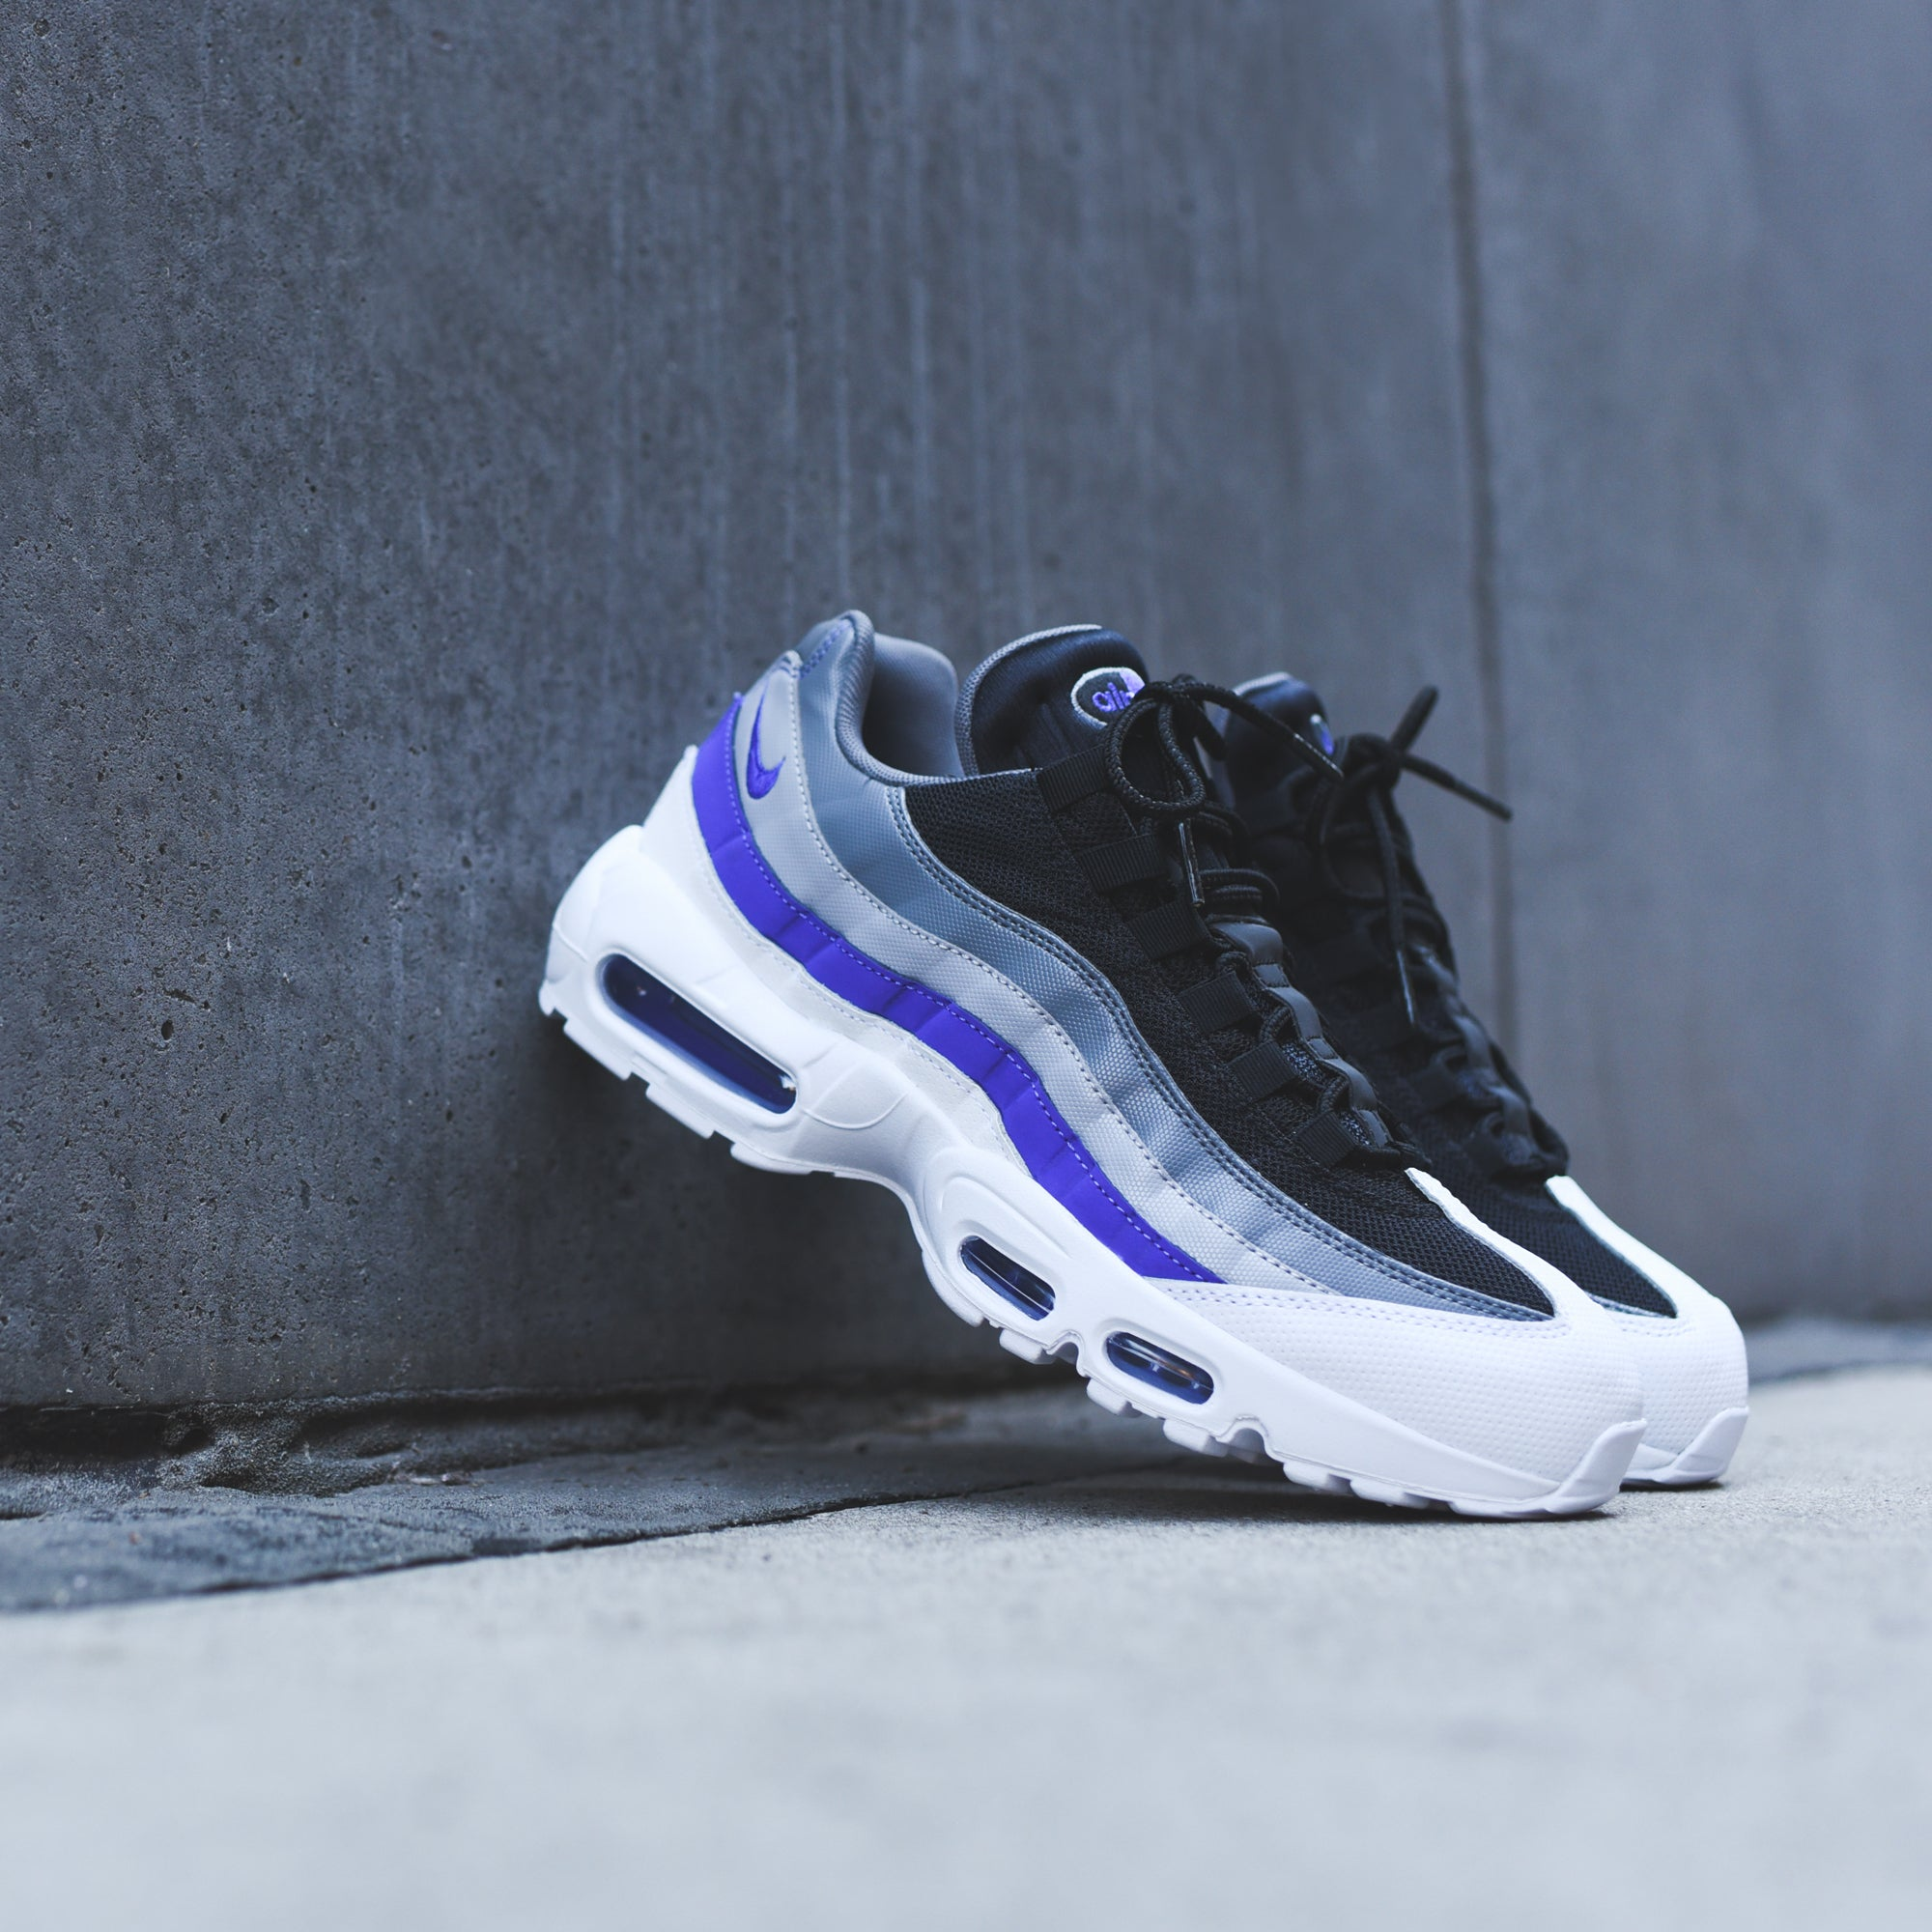 premium selection 1ca34 49bfb Nike Air Max 95 Essential - White / Violet – Kith